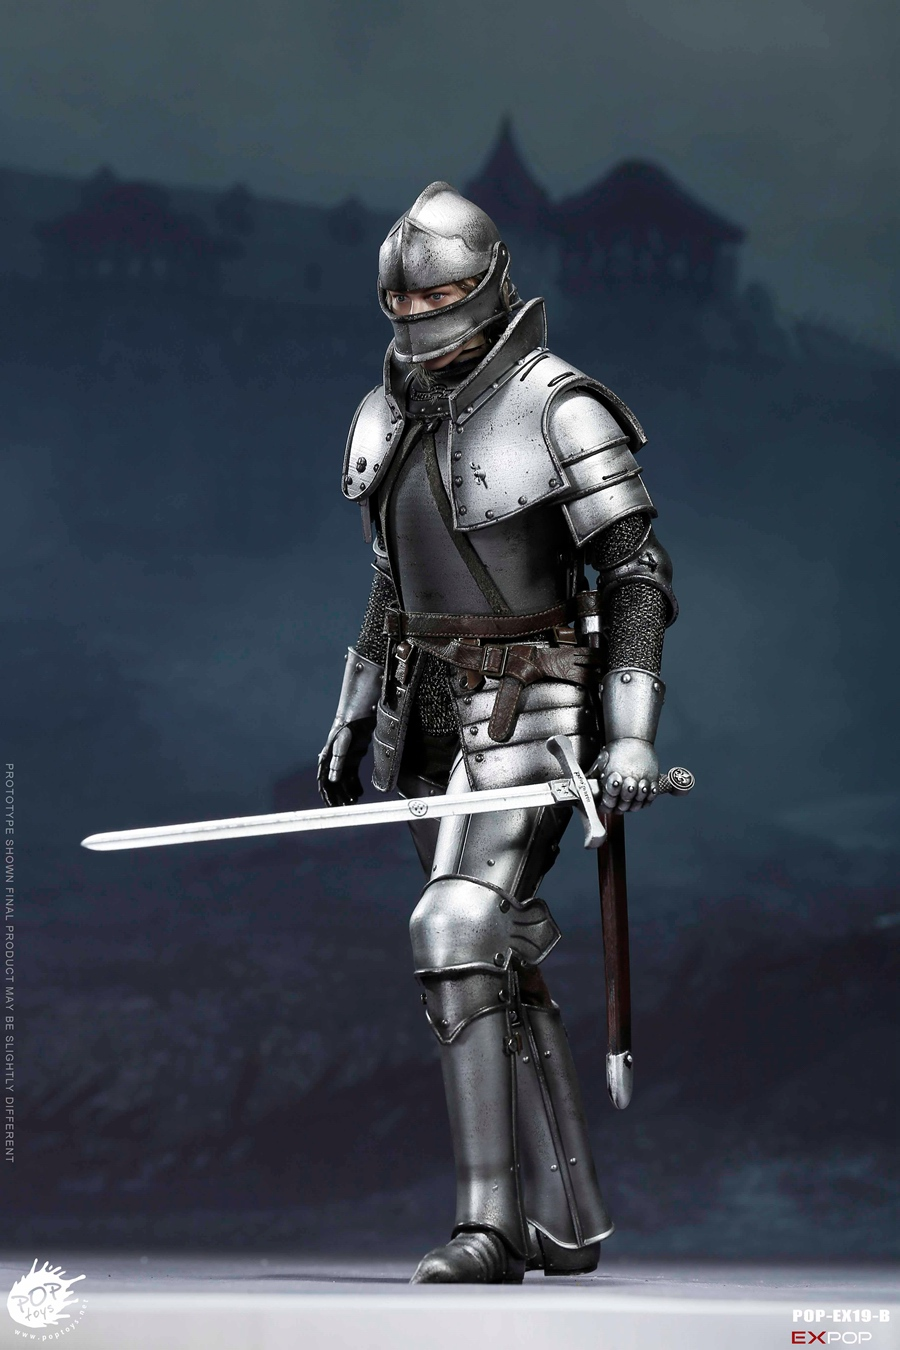 NEW PRODUCT: POPTOYS New Products: 1/6 St. Knights - Assault Edition & Triumph Edition & Iron Armor (POP-EX19 ABC) 347